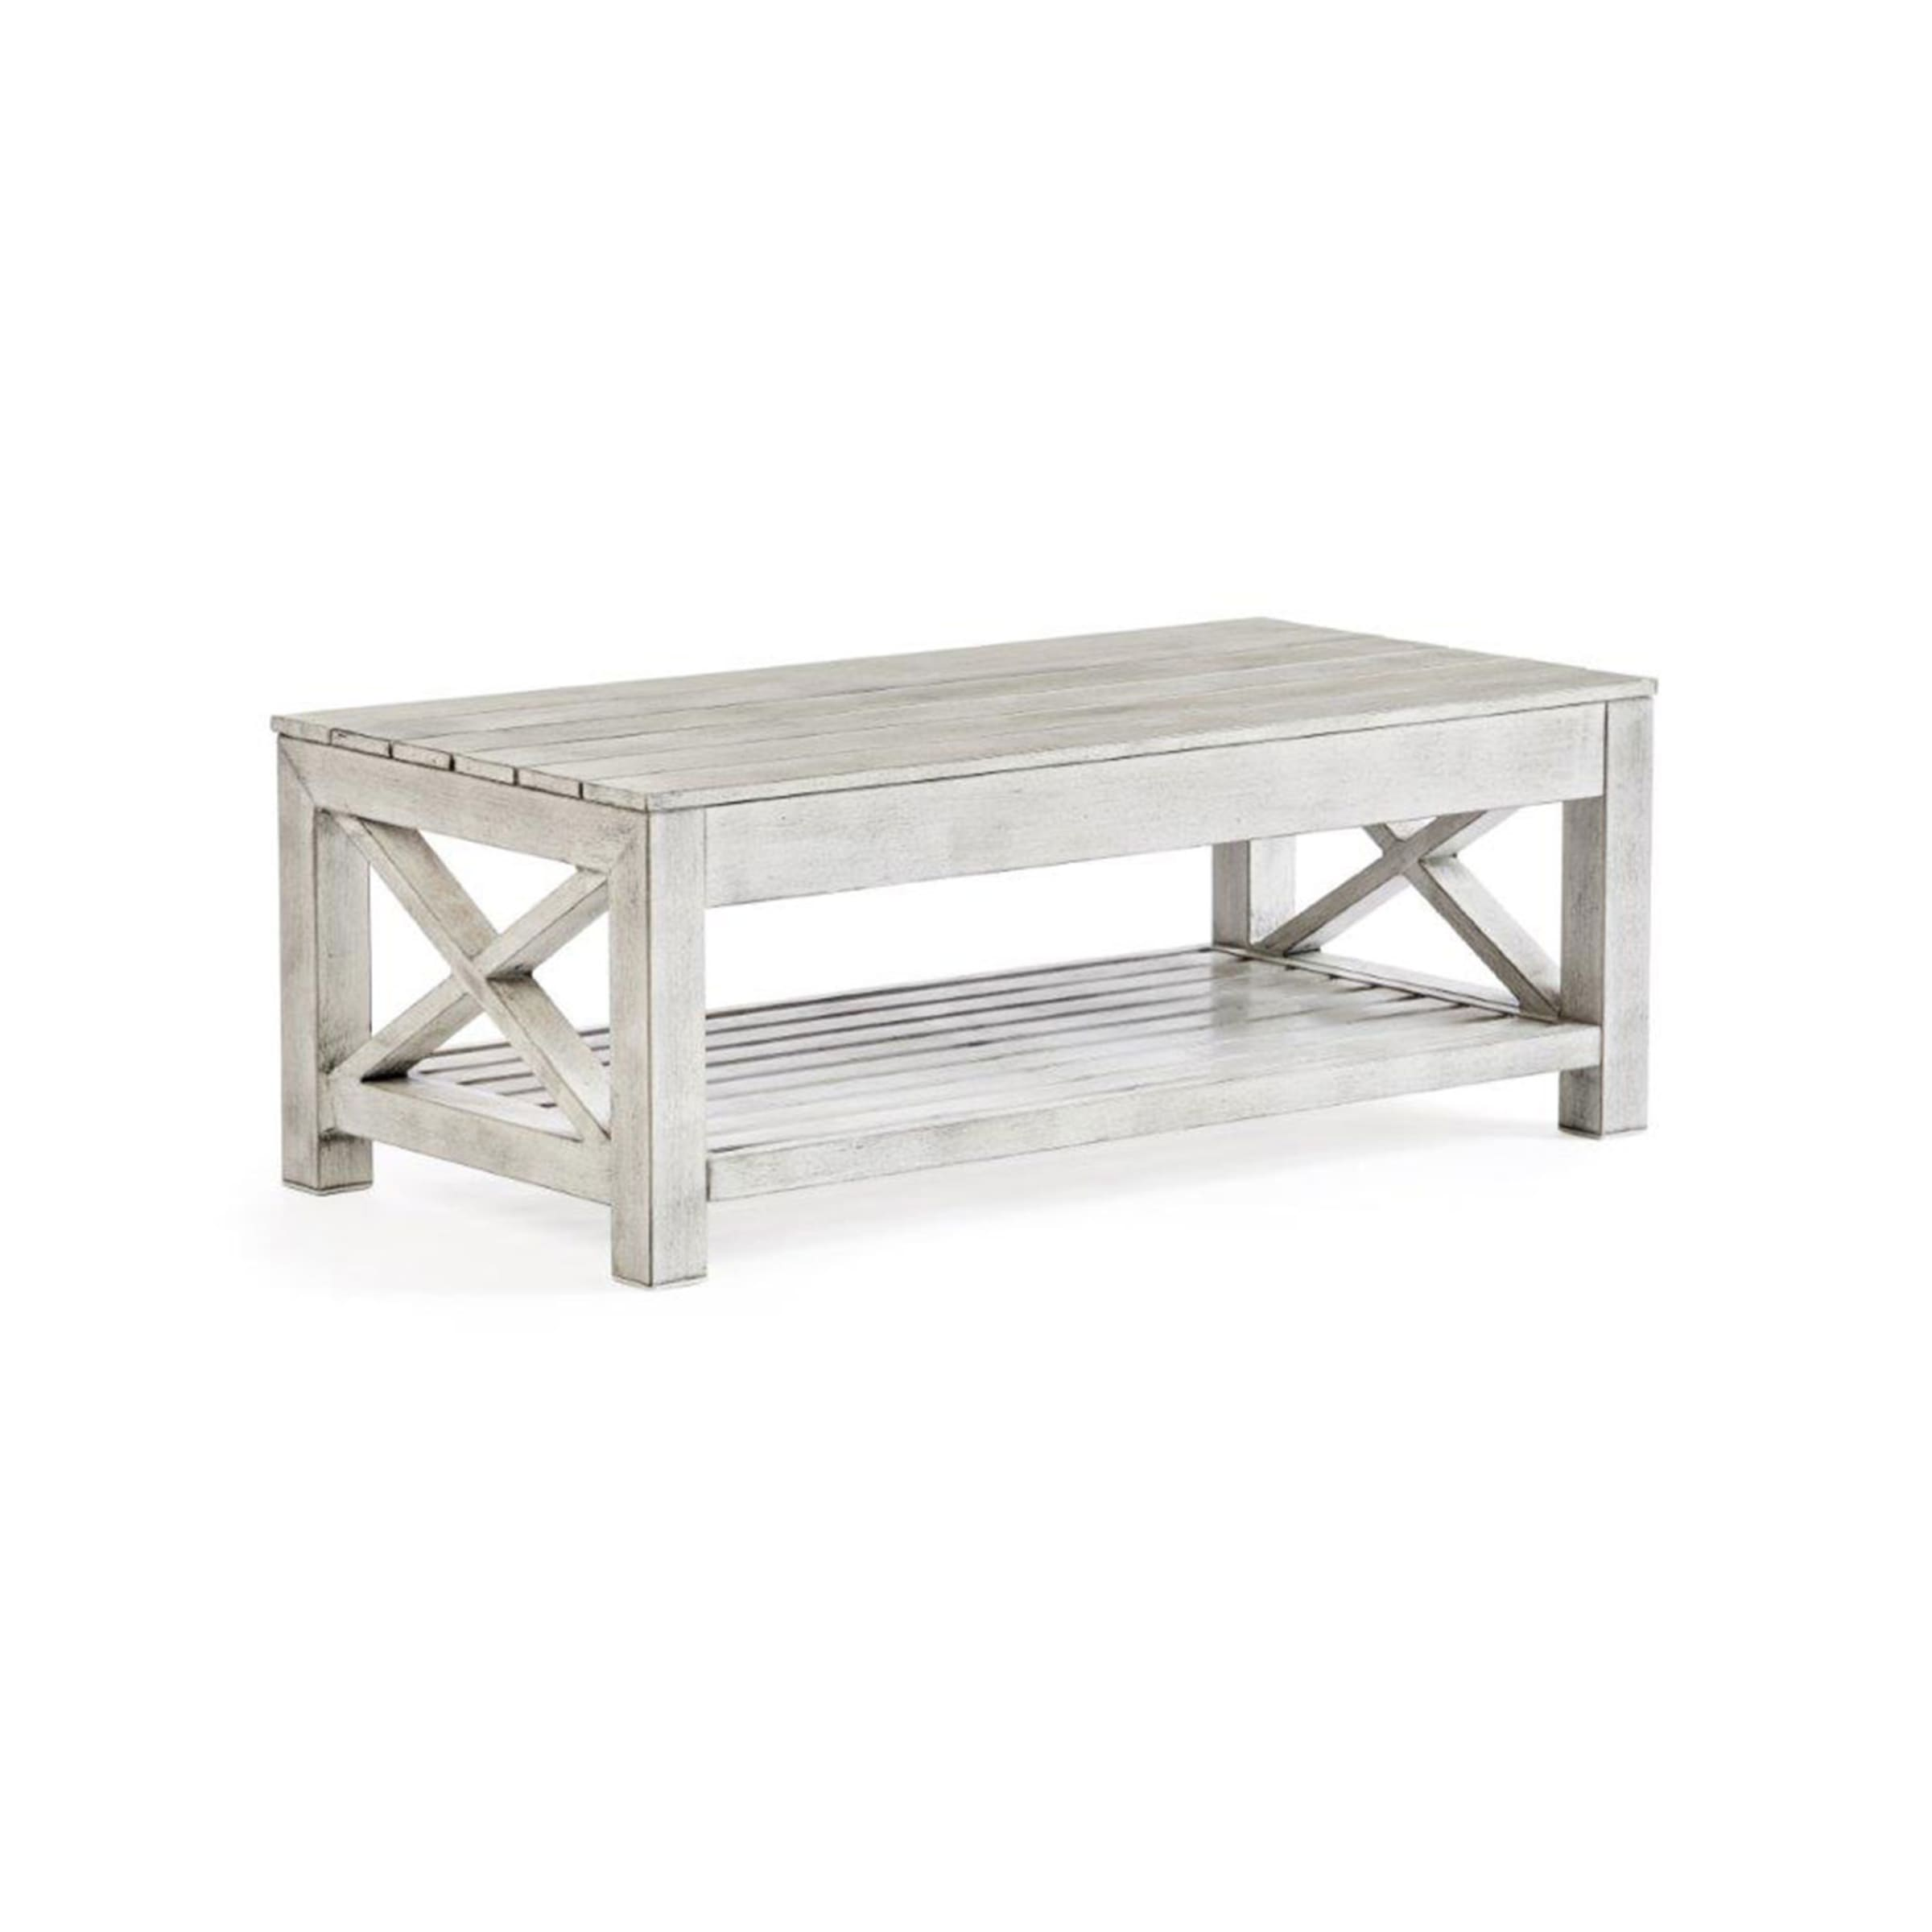 Surrey Coastal Outdoor Coffee Table